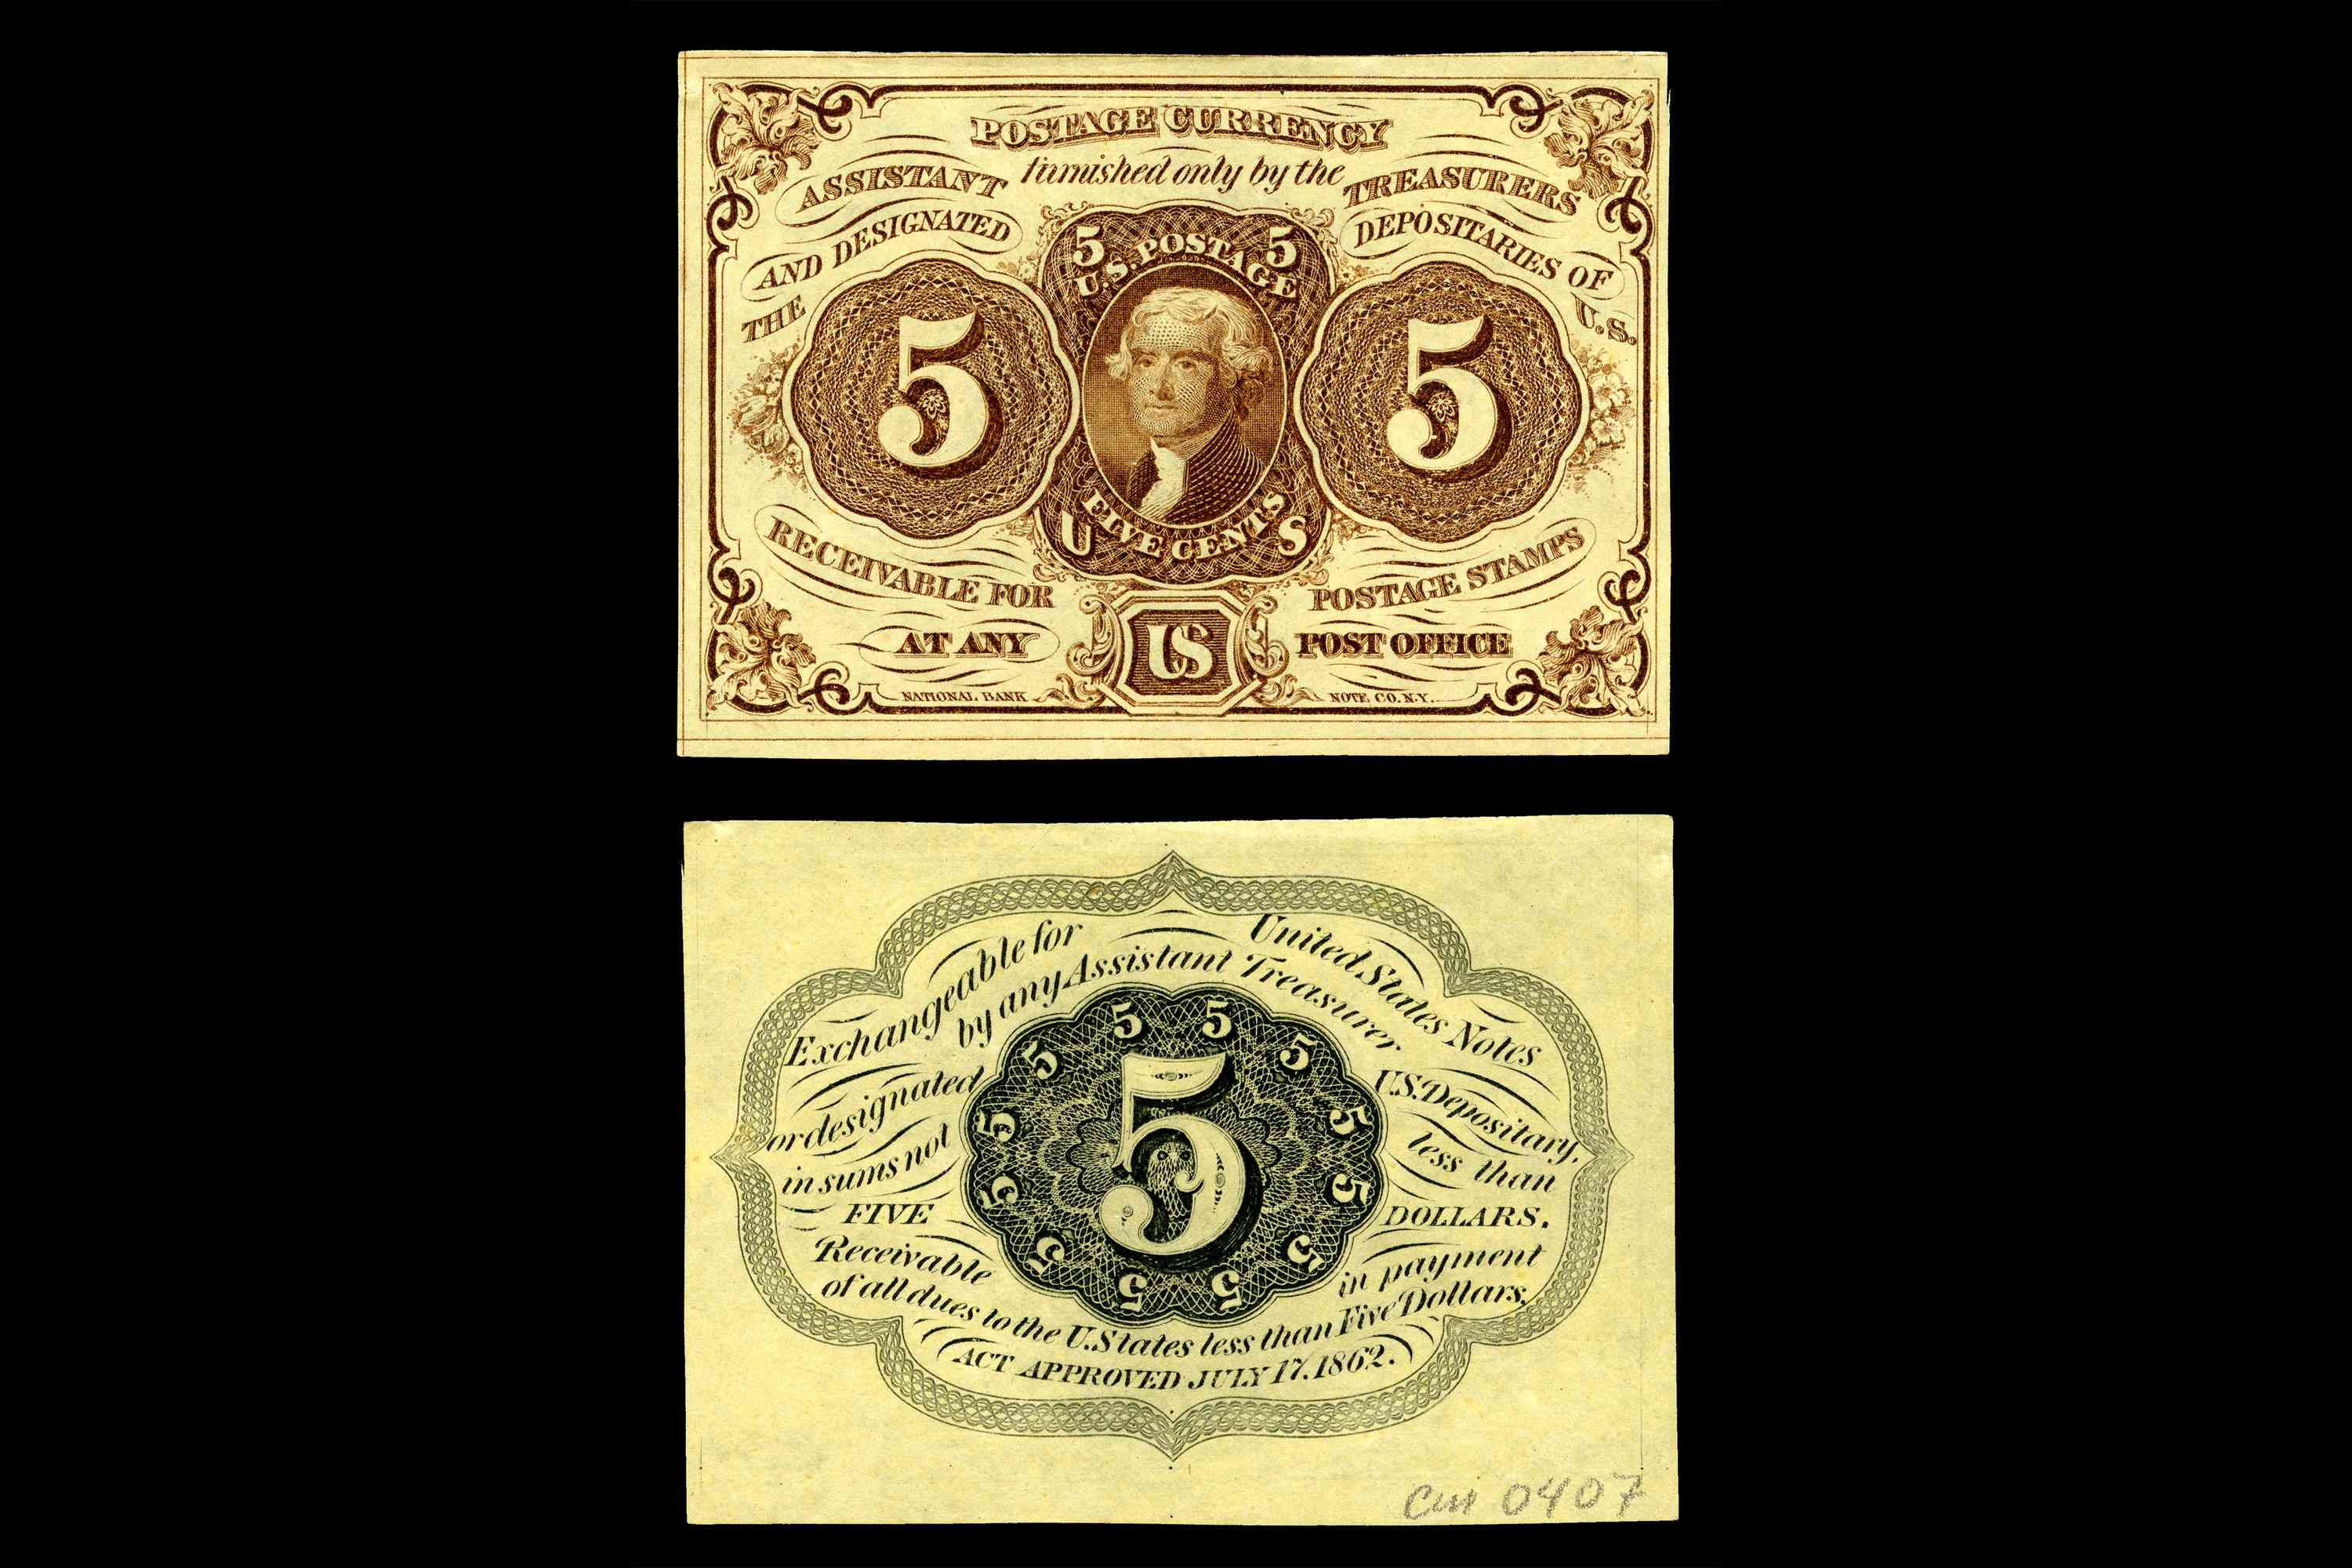 United States fractional currency first issue five cent note